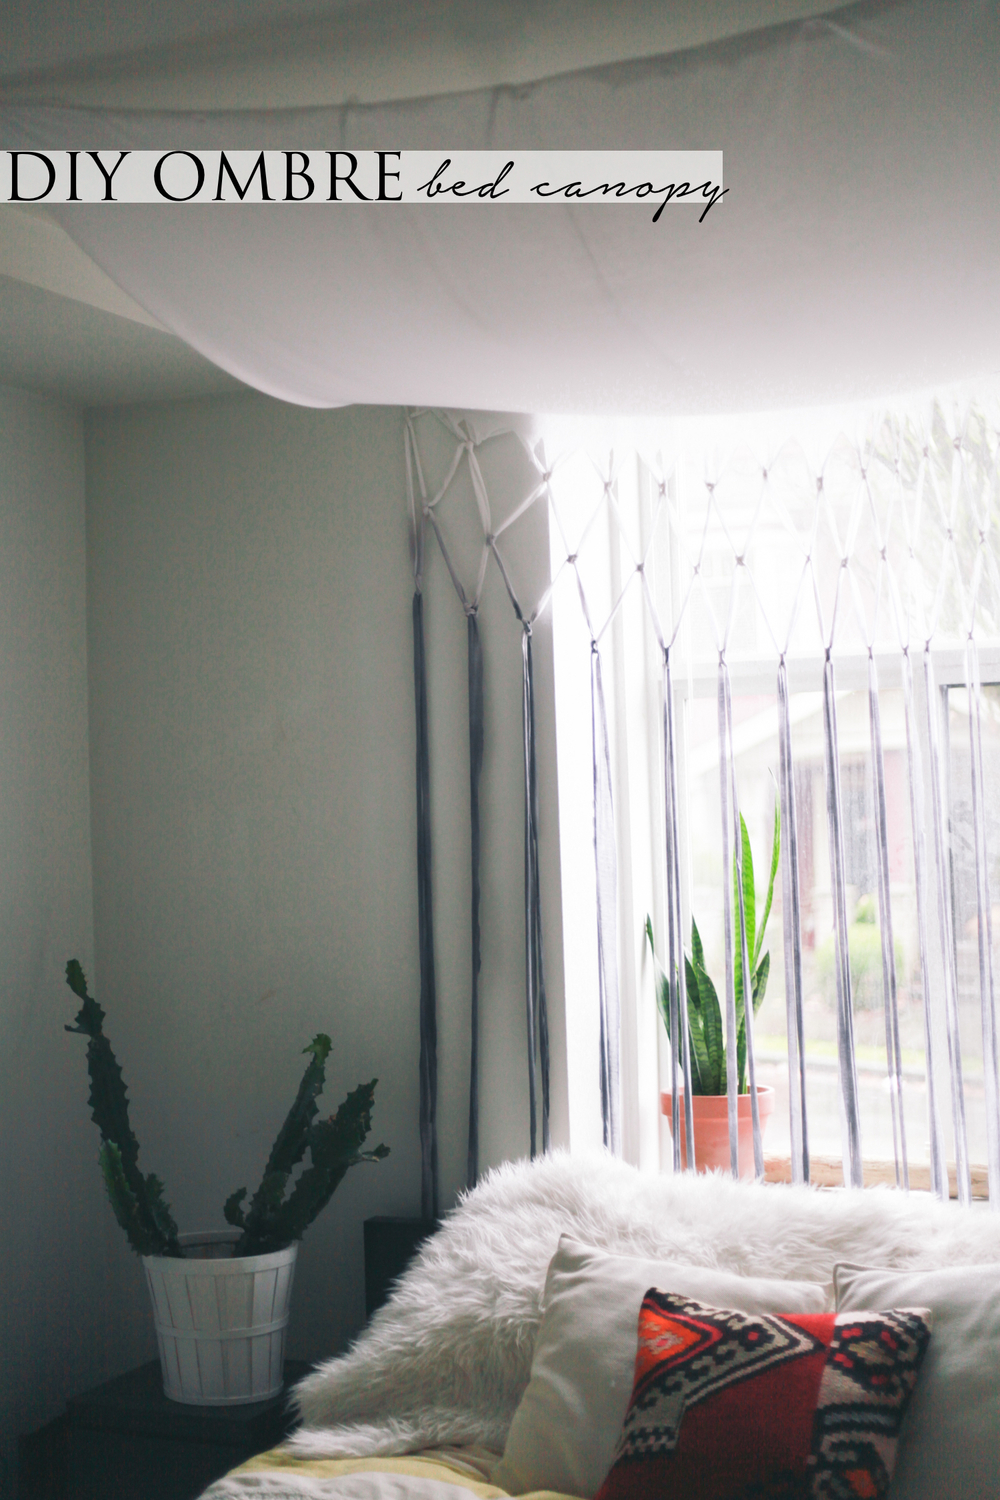 DIY // Ombre Bed Canopy & DIY // Ombre Bed Canopy u2014 Treasures u0026 Travels